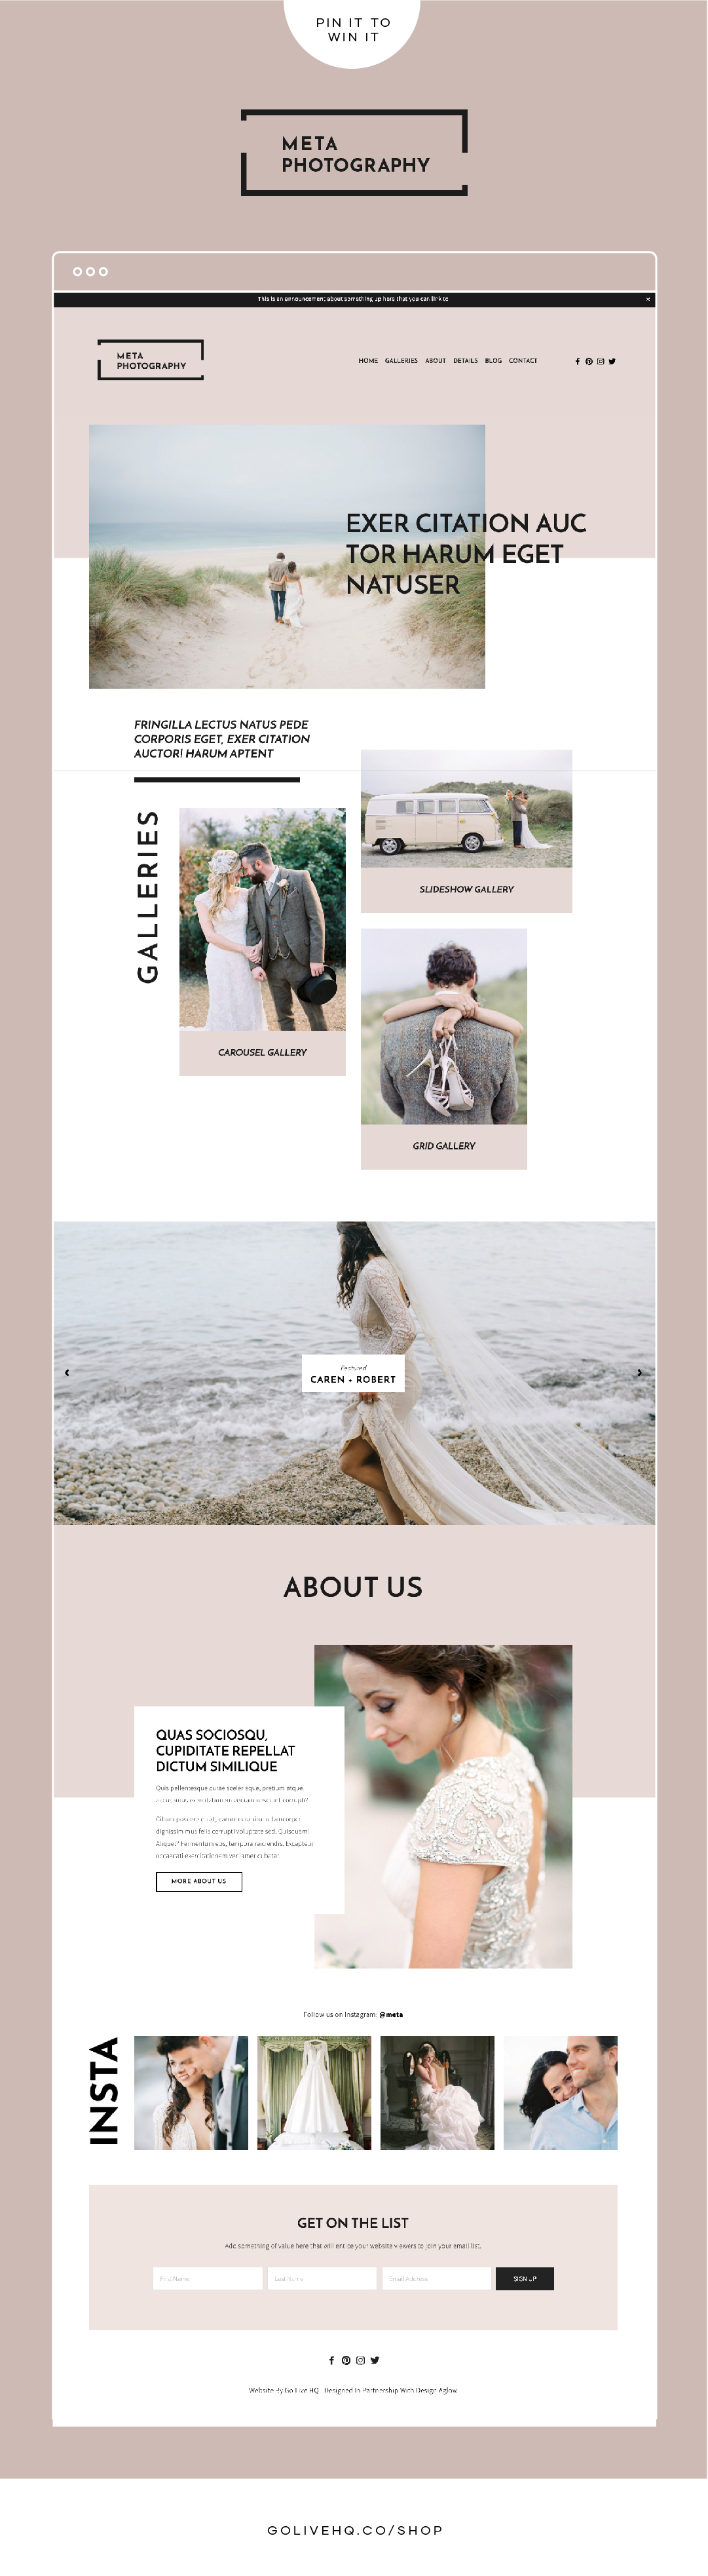 Modern, Minimal Photography Website Template Design For Squarespace | By Golive